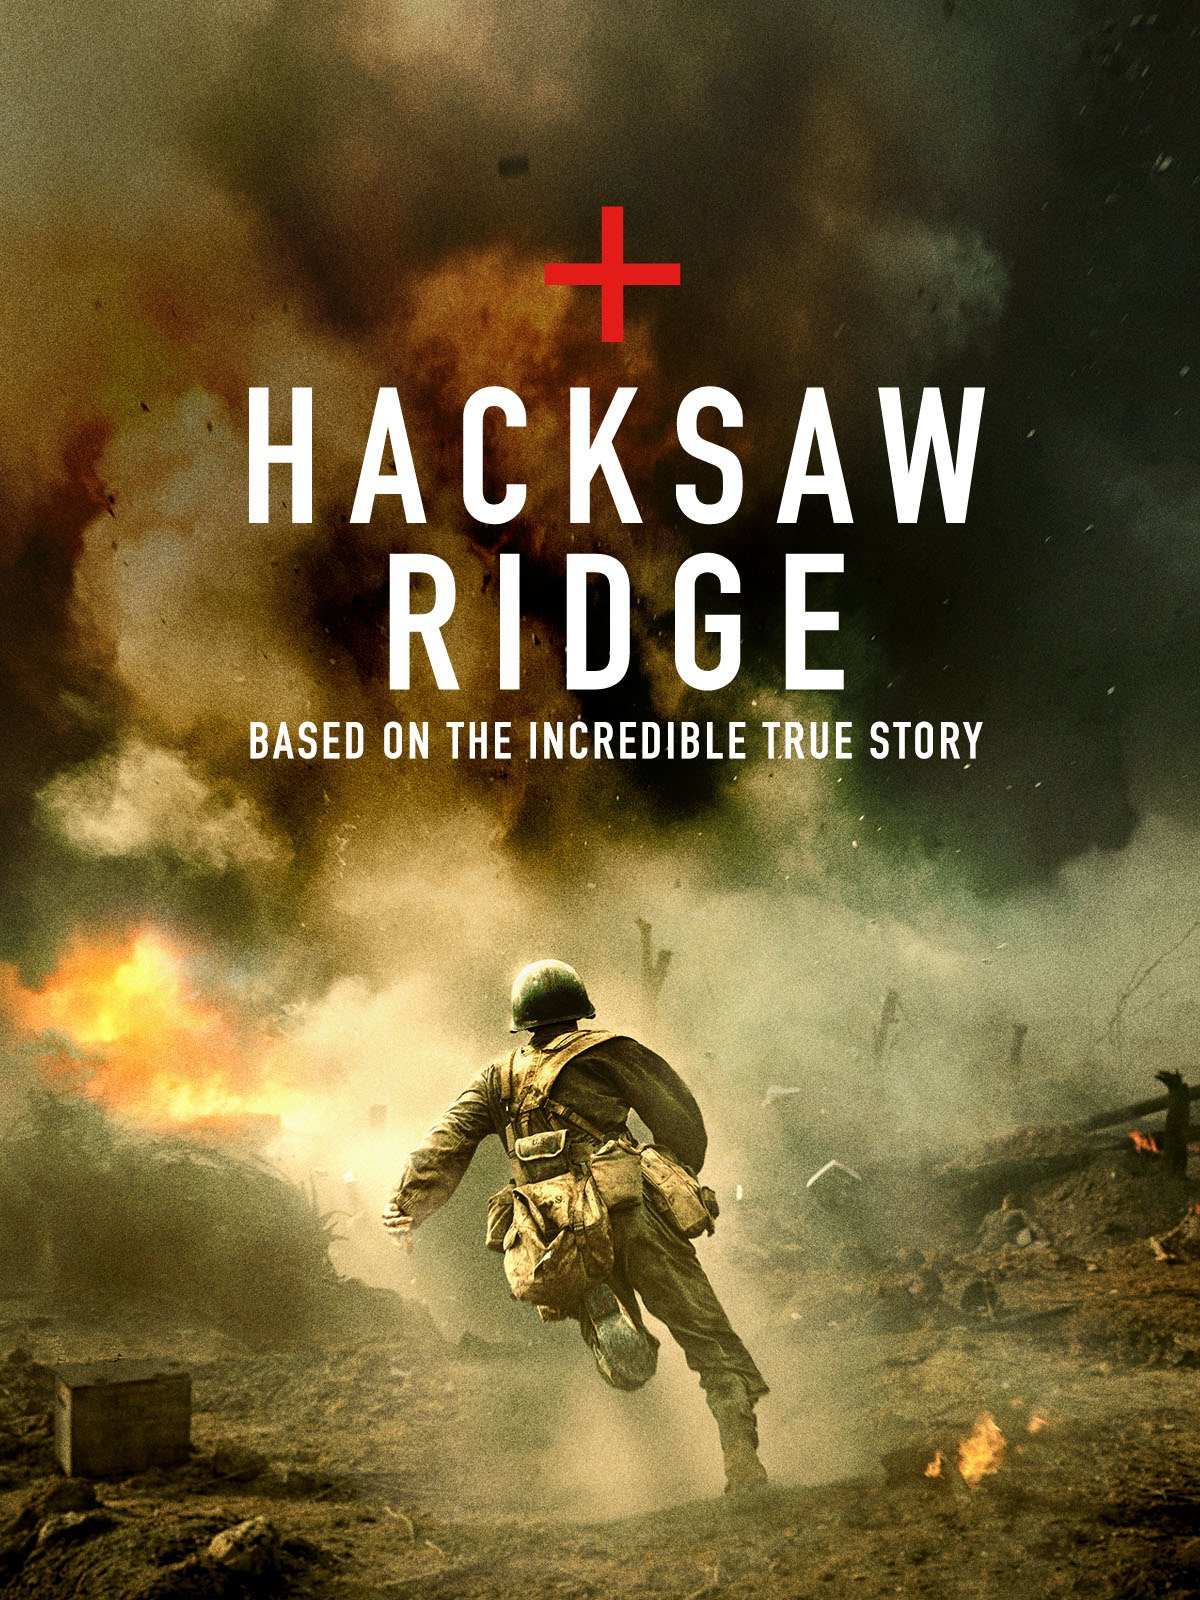 Watch Hacksaw Ridge Prime Video